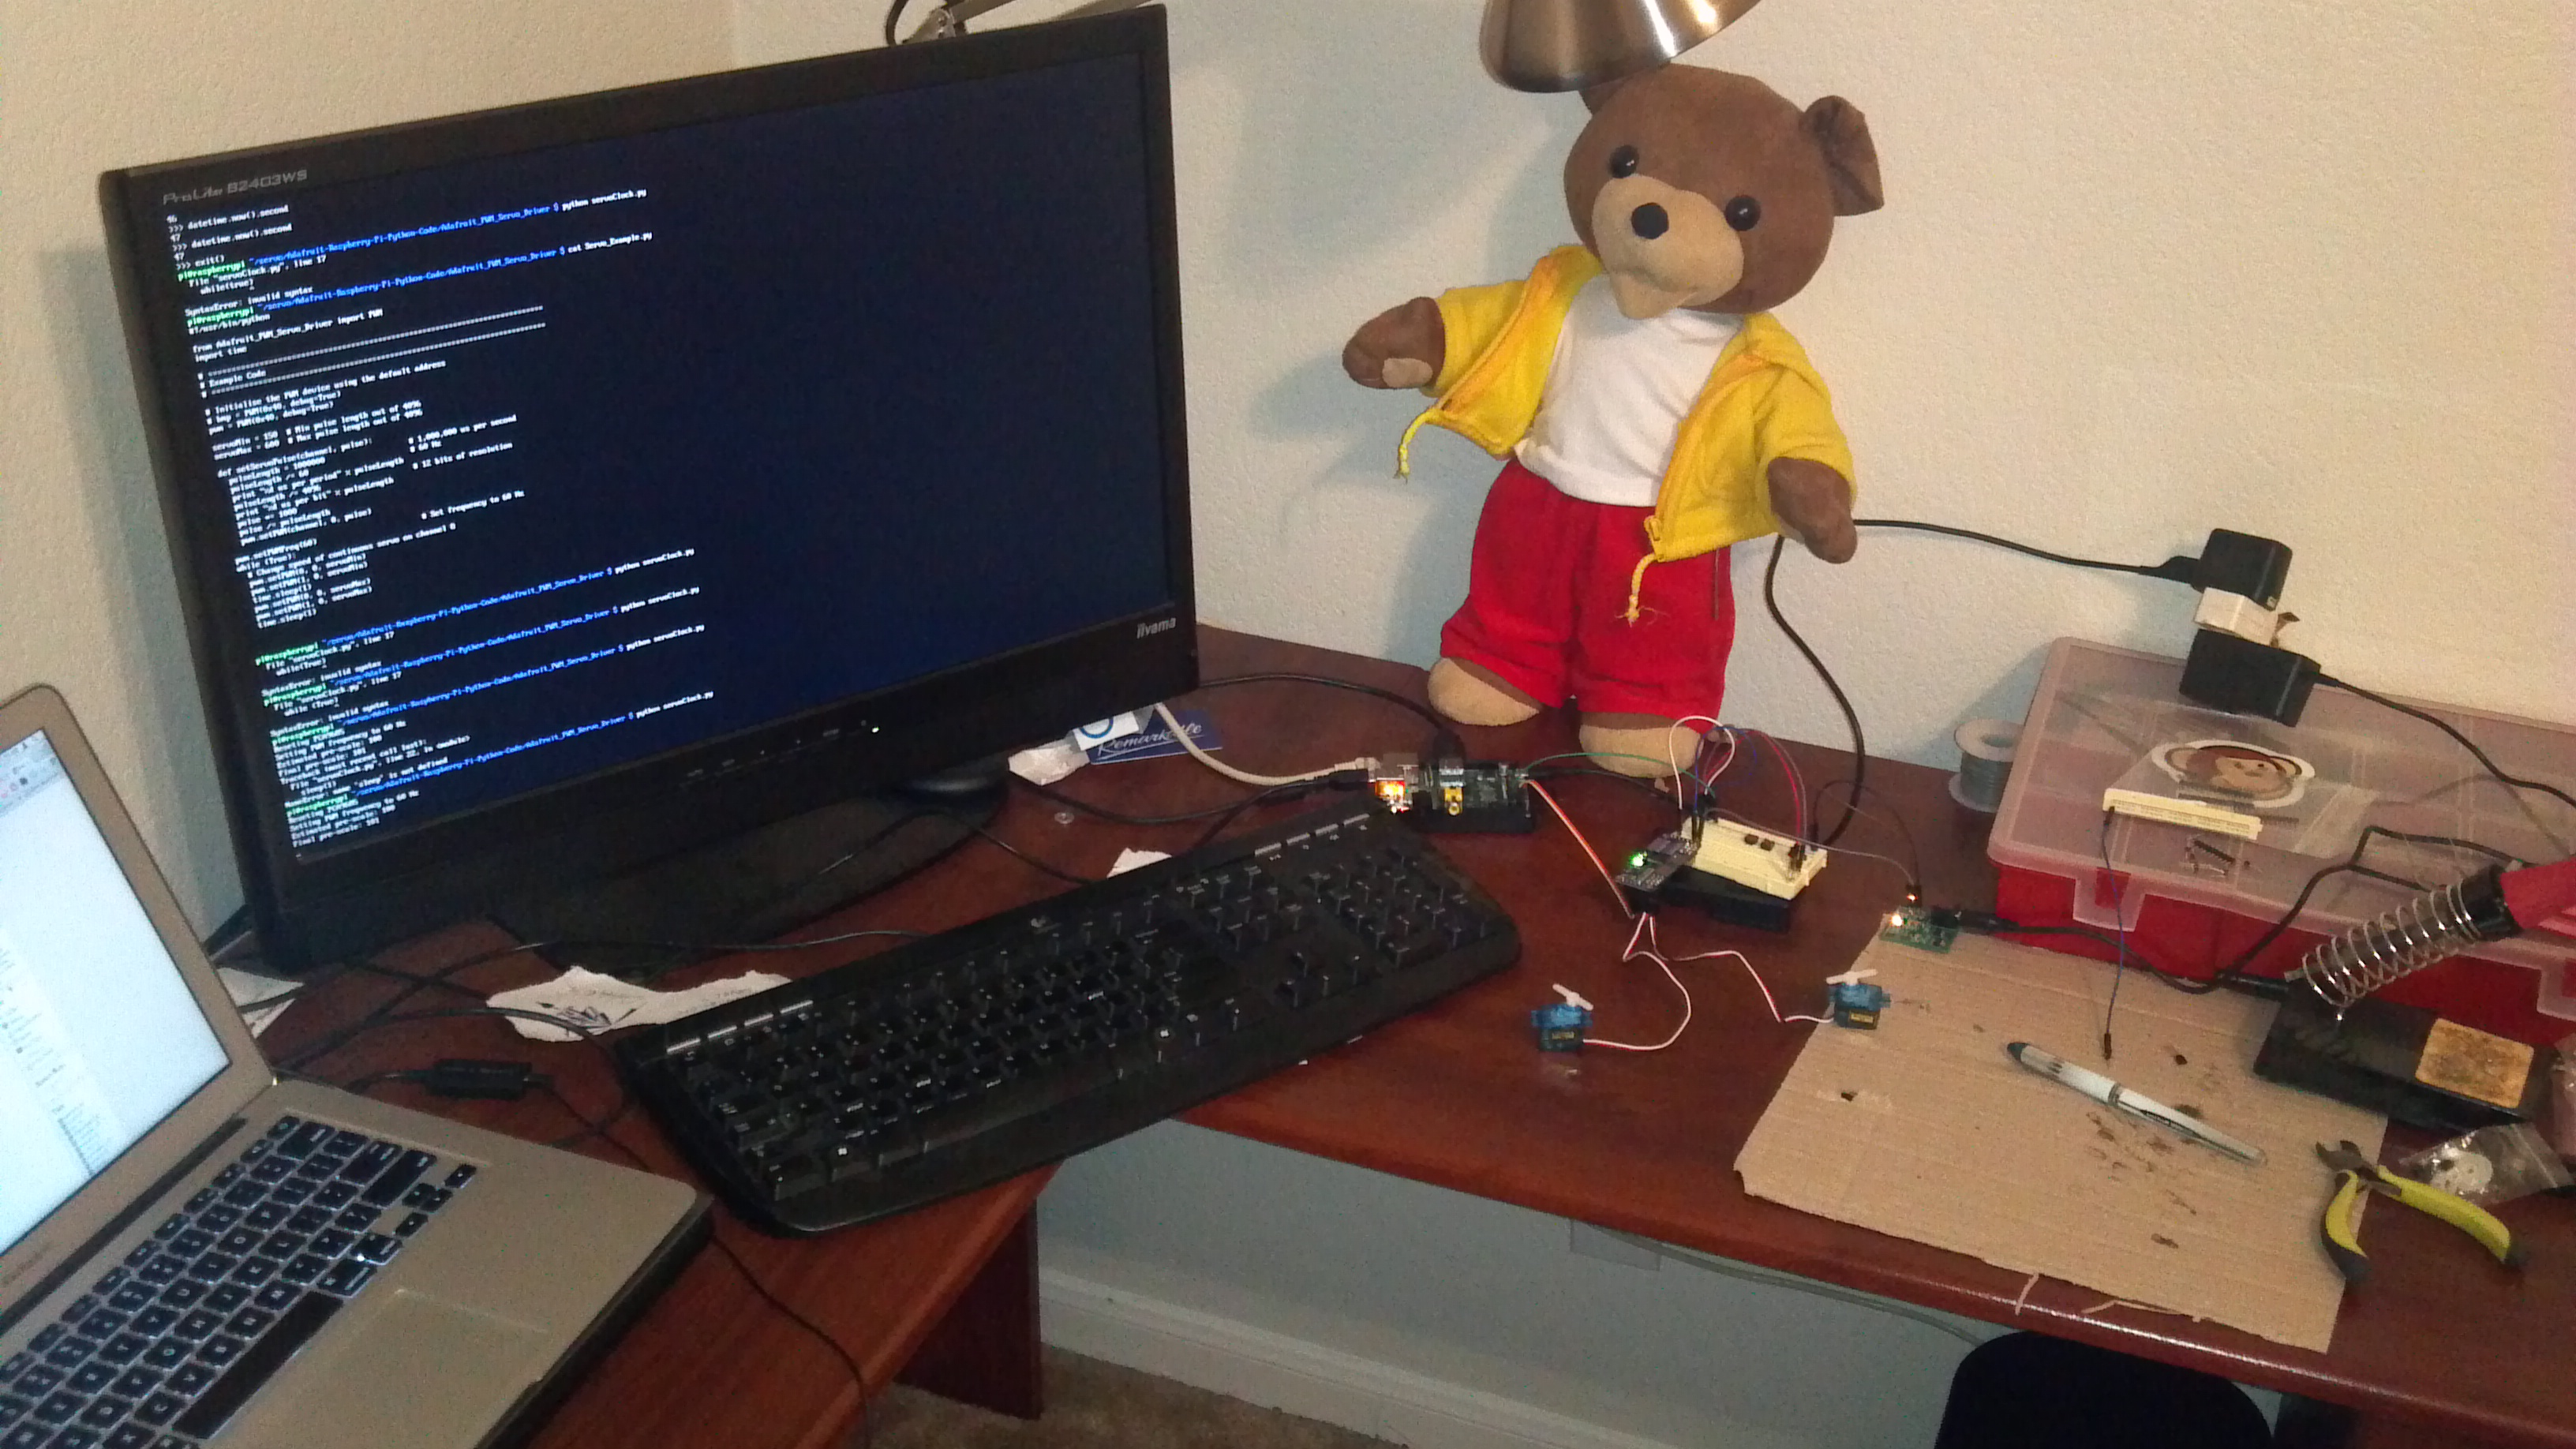 how to add my net proyect to github